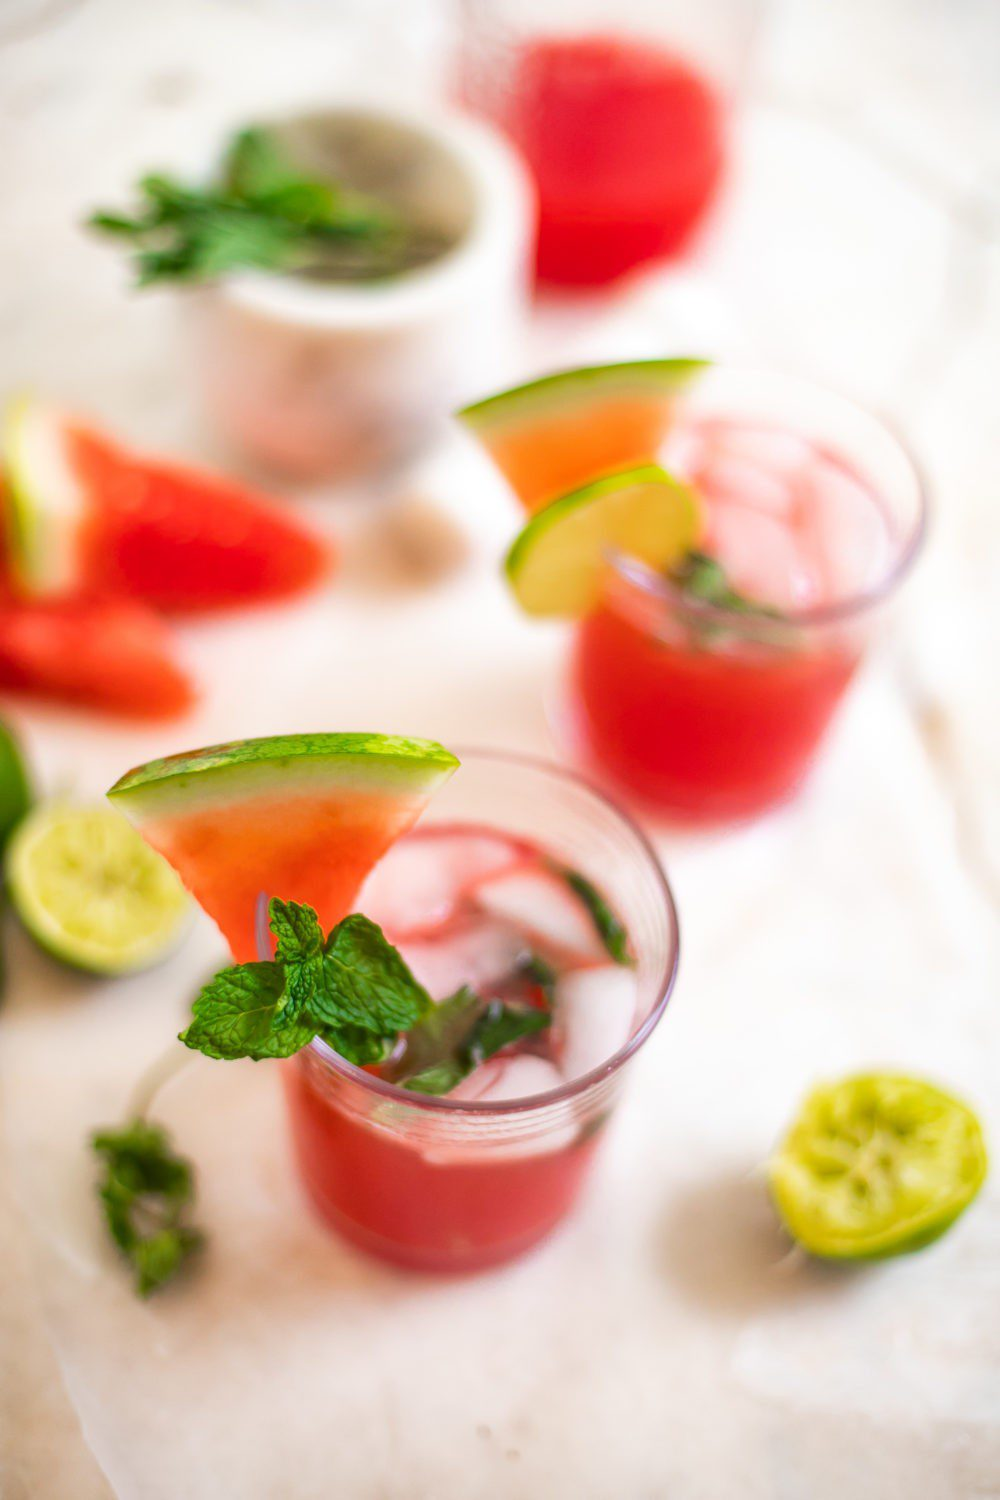 Refreshingly Easy Summer Mocktail Recipes! by popular Florida lifestyle blog, Fresh Mommy: image of Watermelon mojiotos on a marble countertop surrounded by lime halves and watermelon slices.